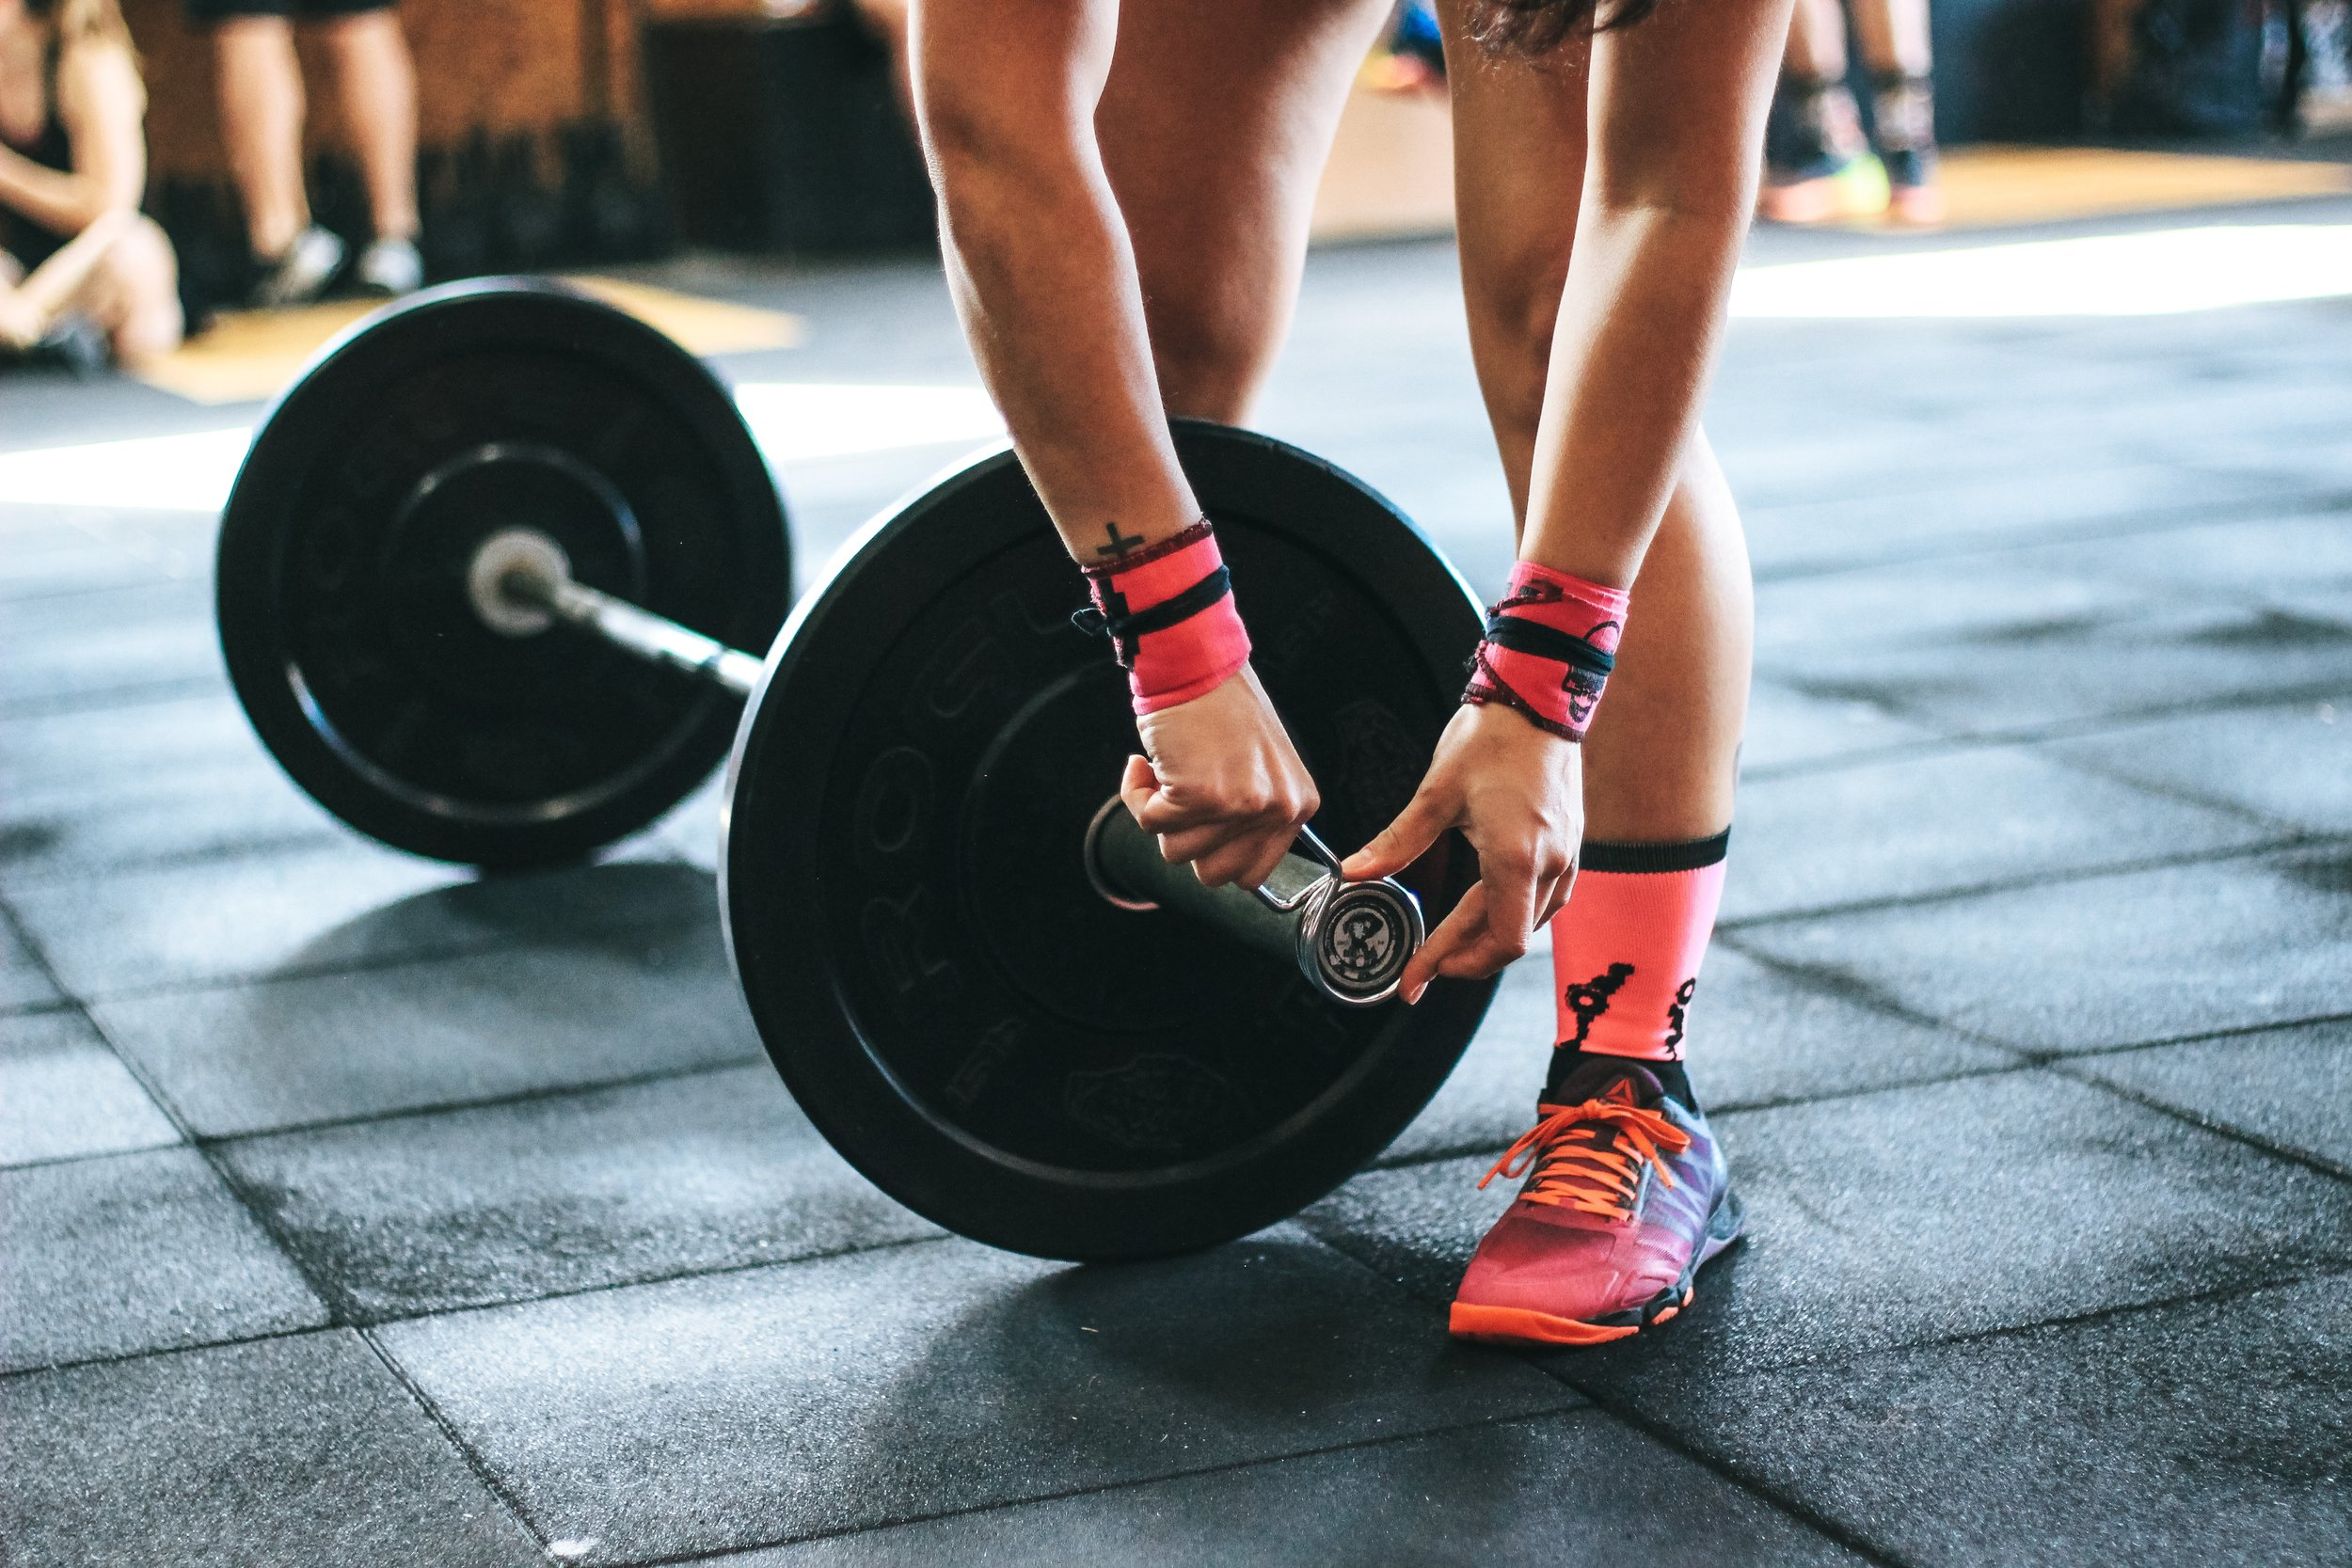 Girl with supplements, pink trainers and wrist wraps gear doing barbell workout